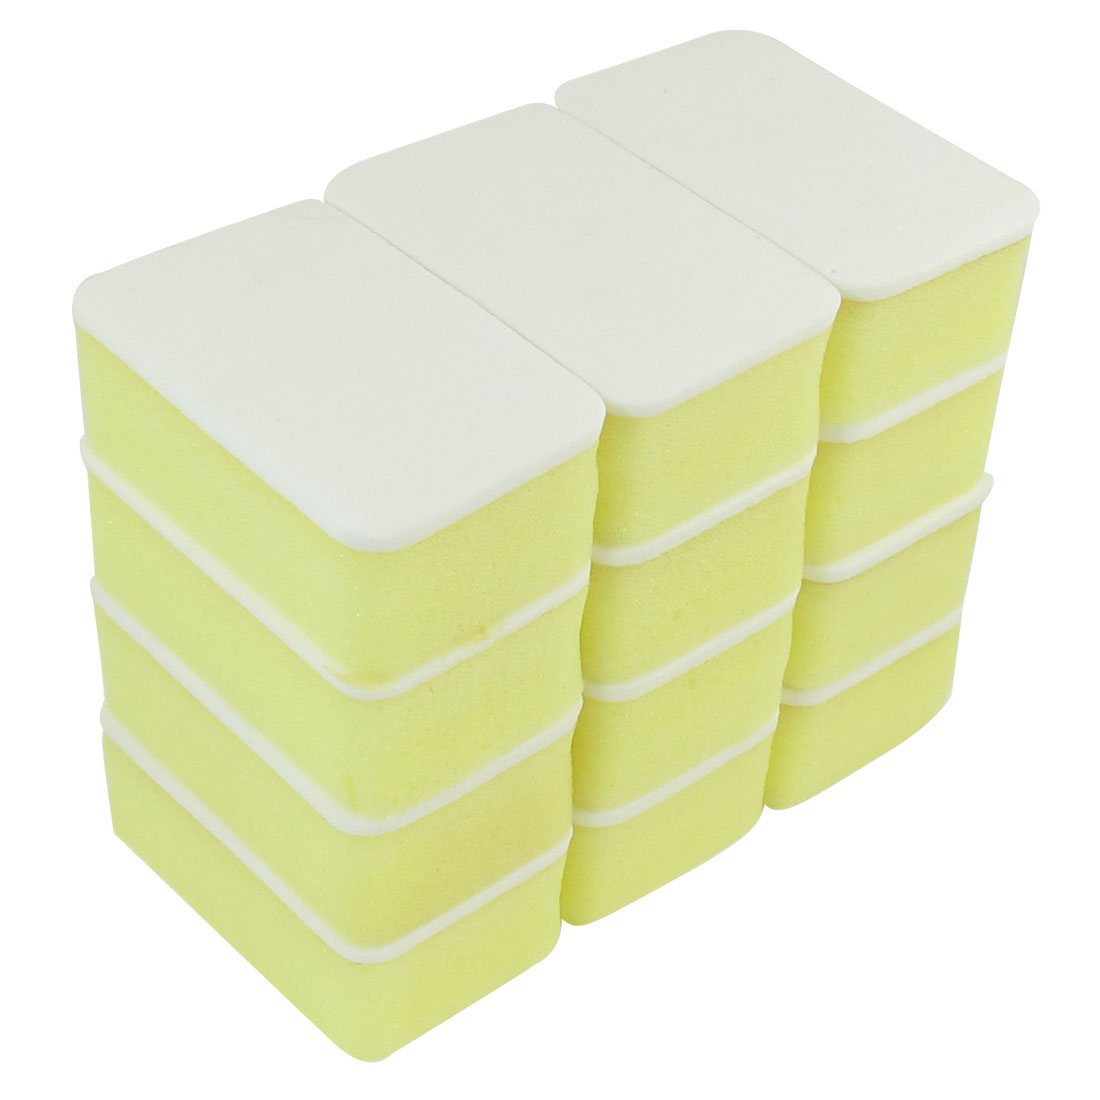 12 Pcs Yellow White Soft Wax Waxing Polishing Sponge for Auto Cars